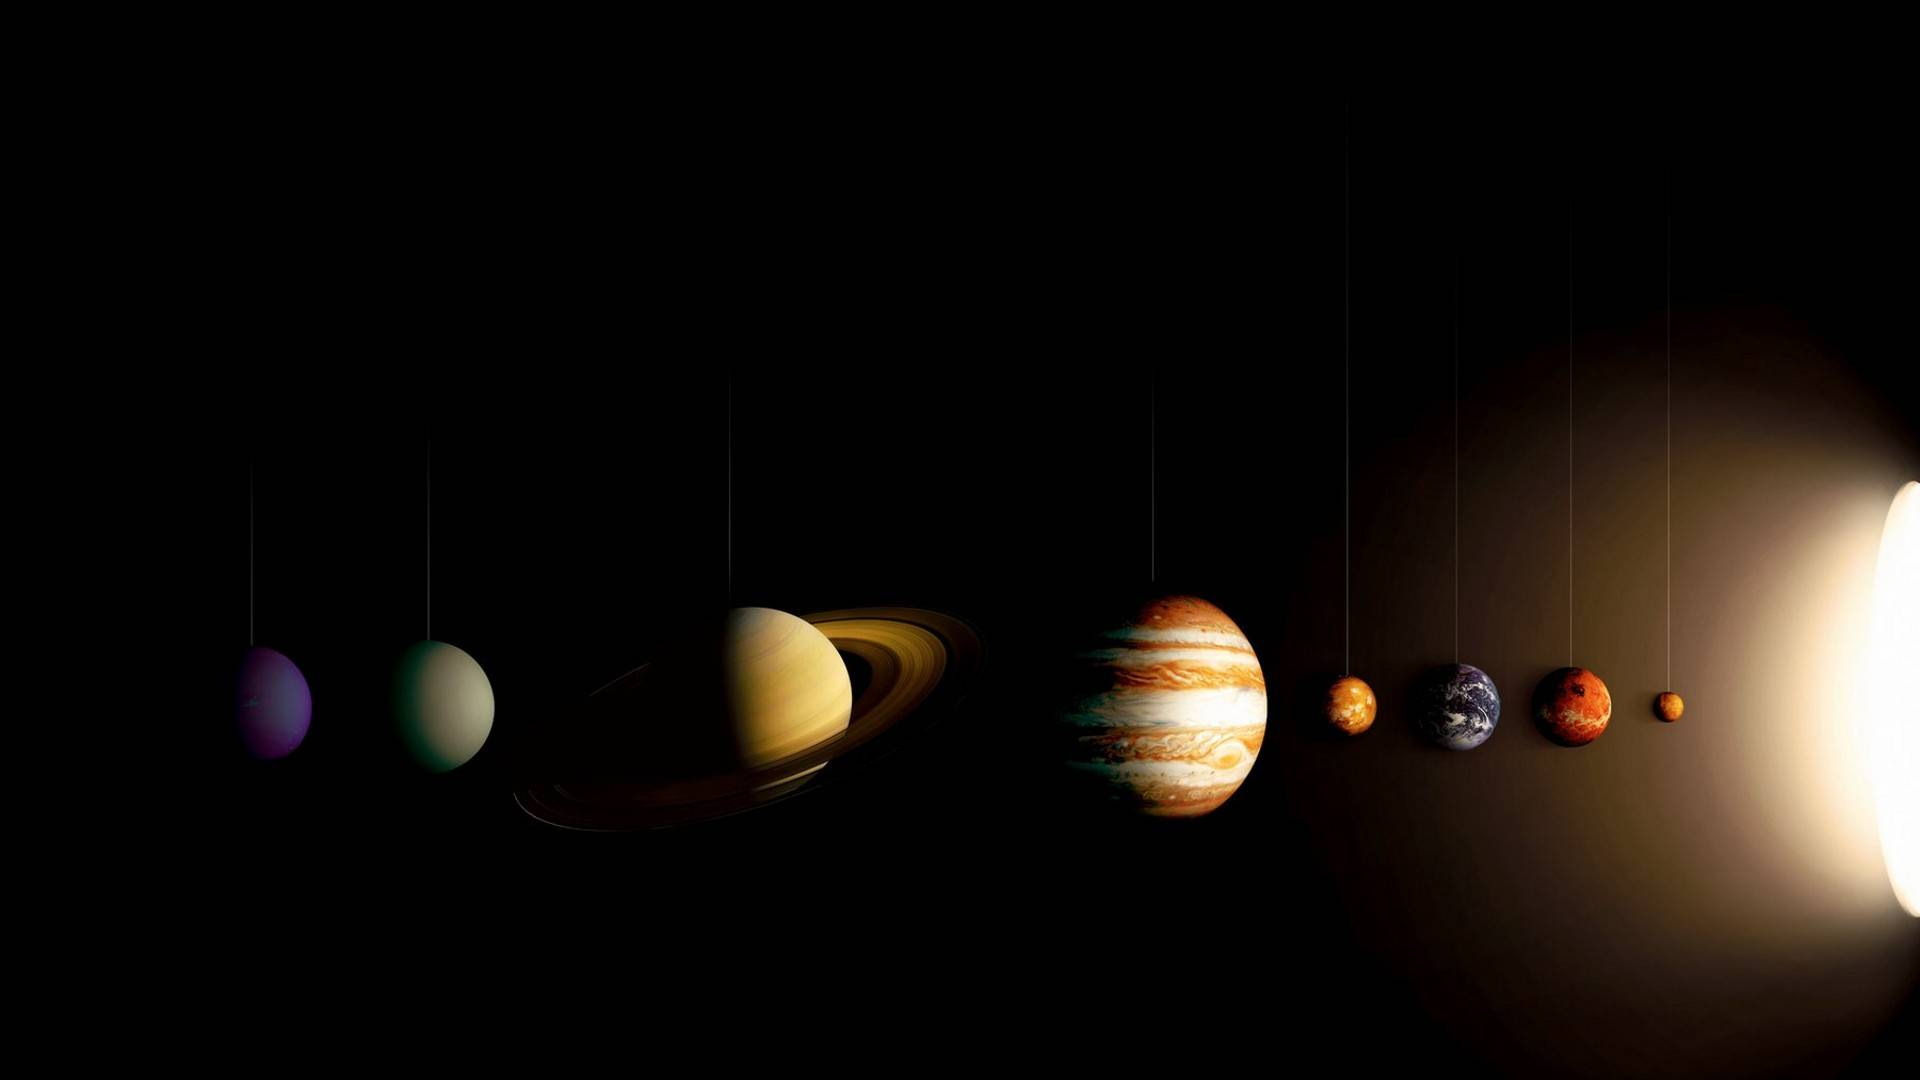 3d Solar System Live Wallpaper For Android Solar System Wallpapers Wallpaper Cave